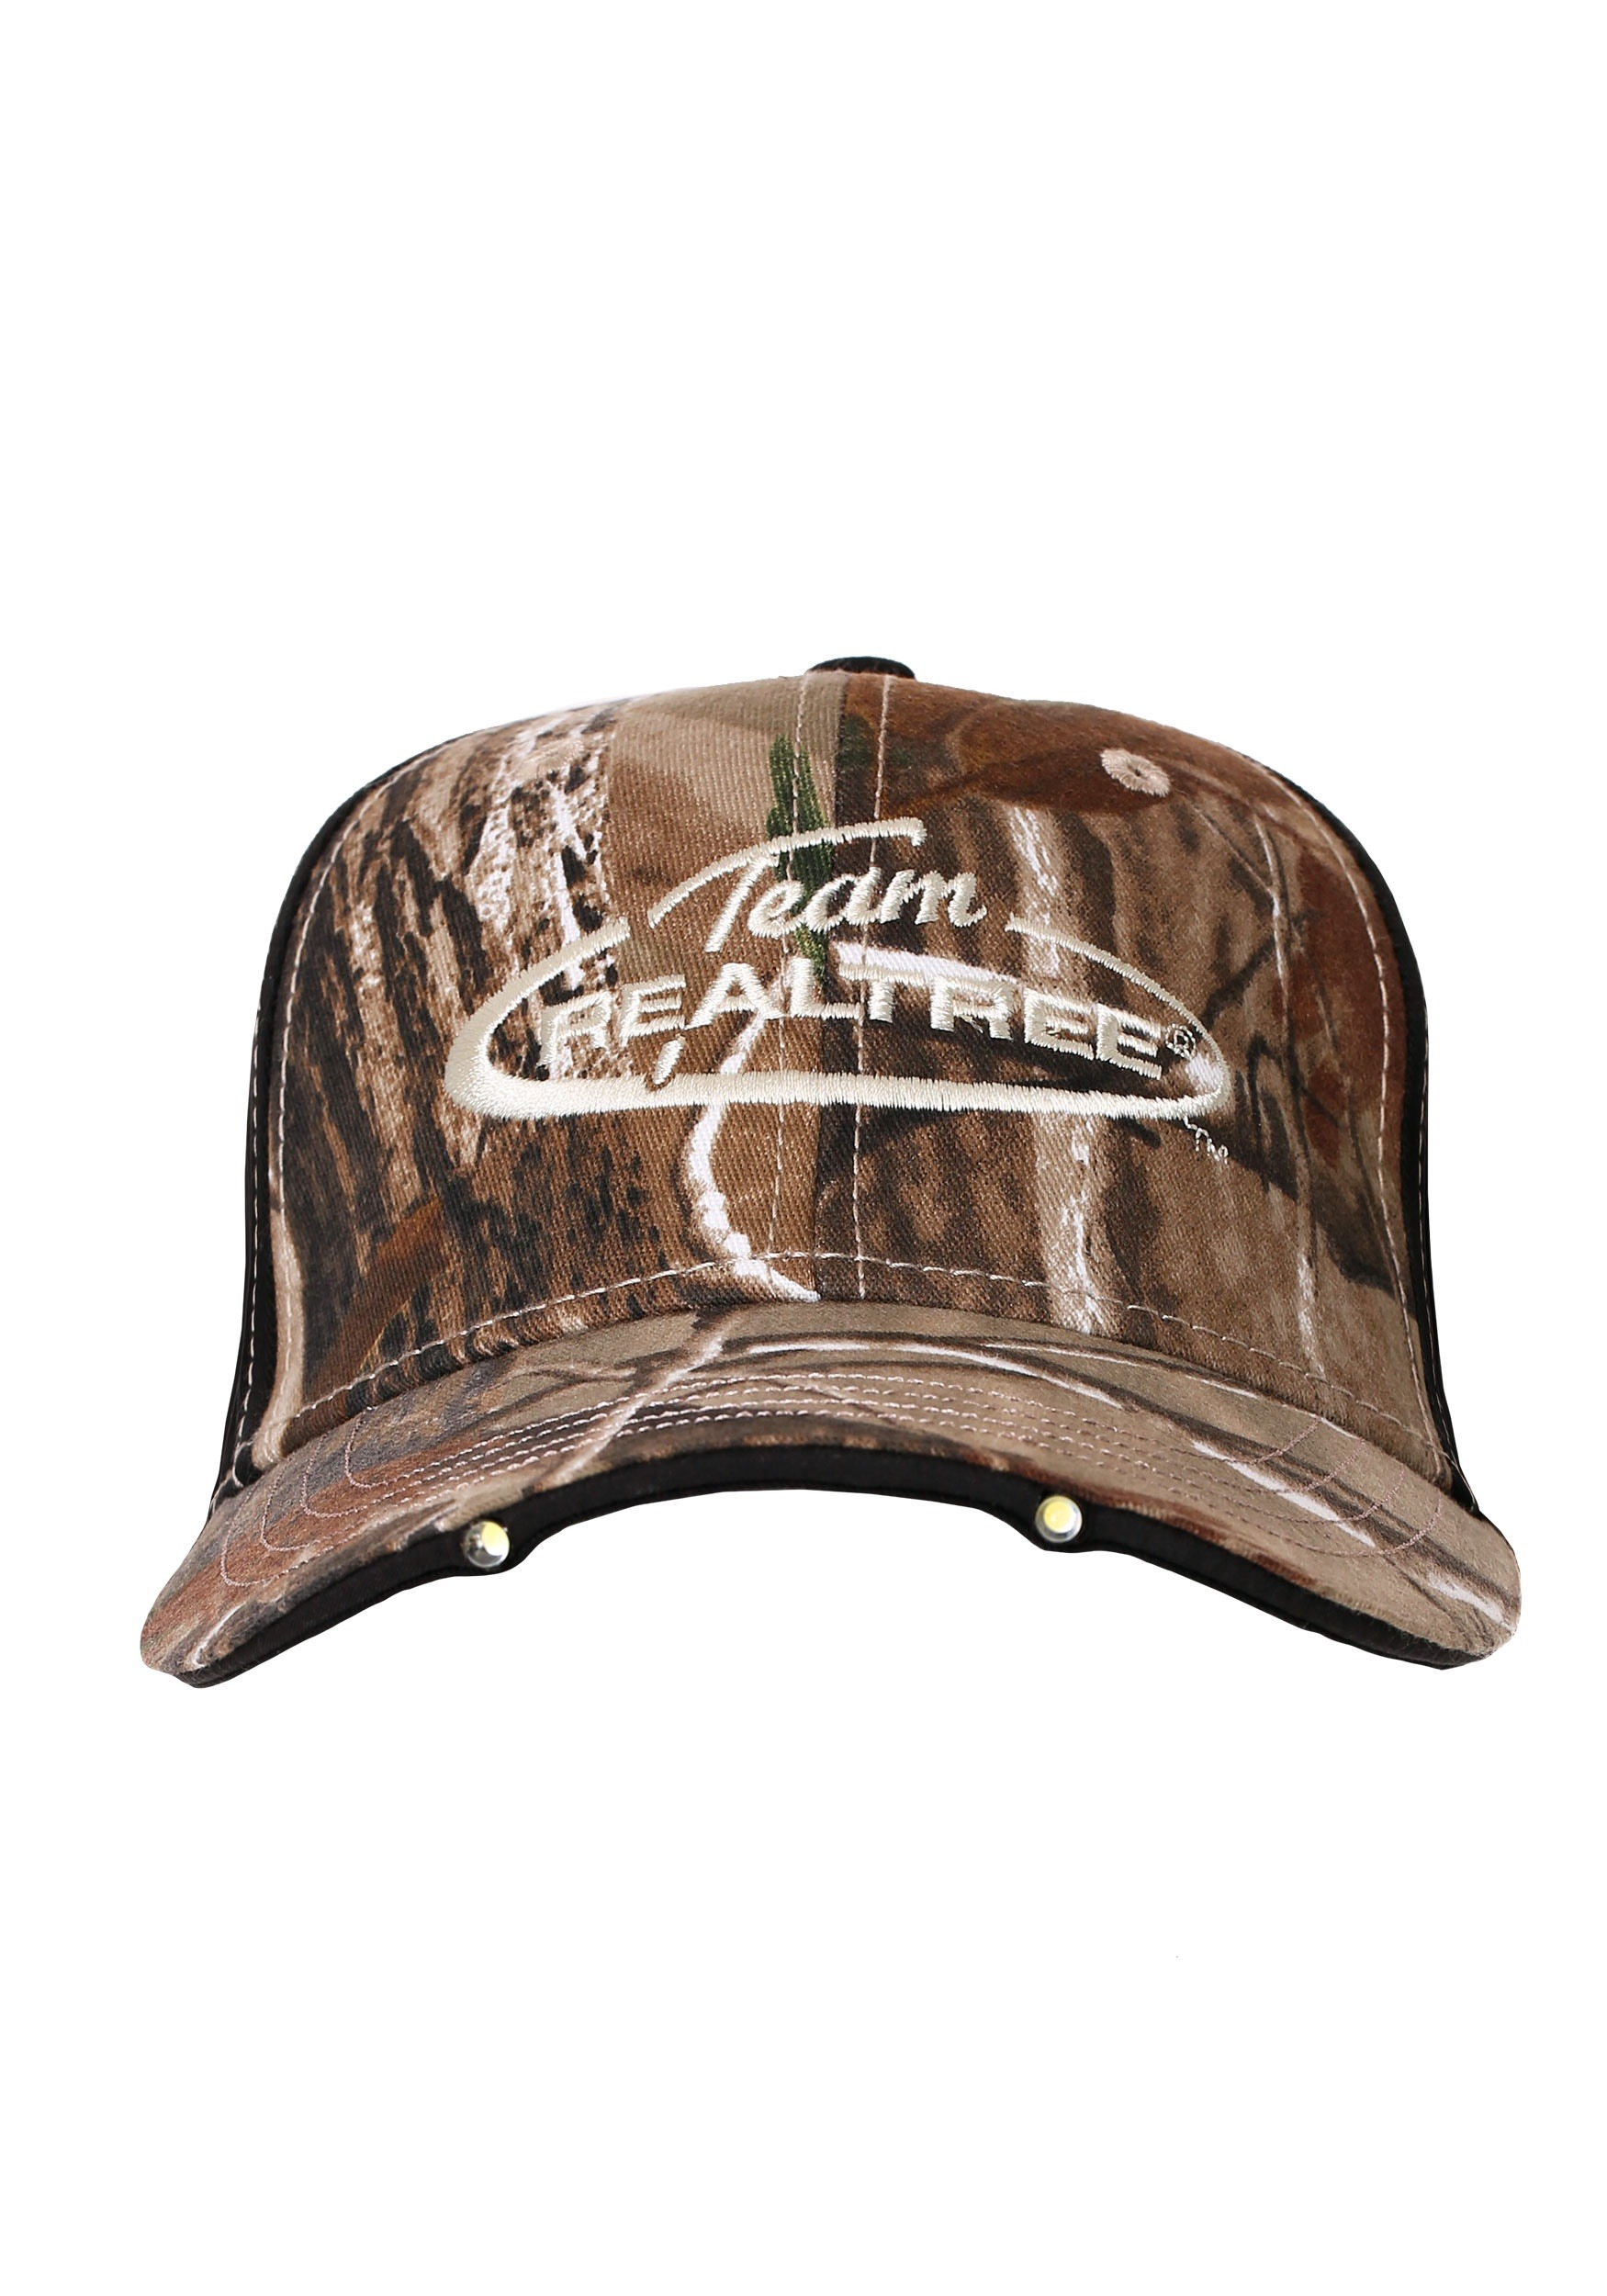 Team Realtree Camo Hat with LED Lights in Visor